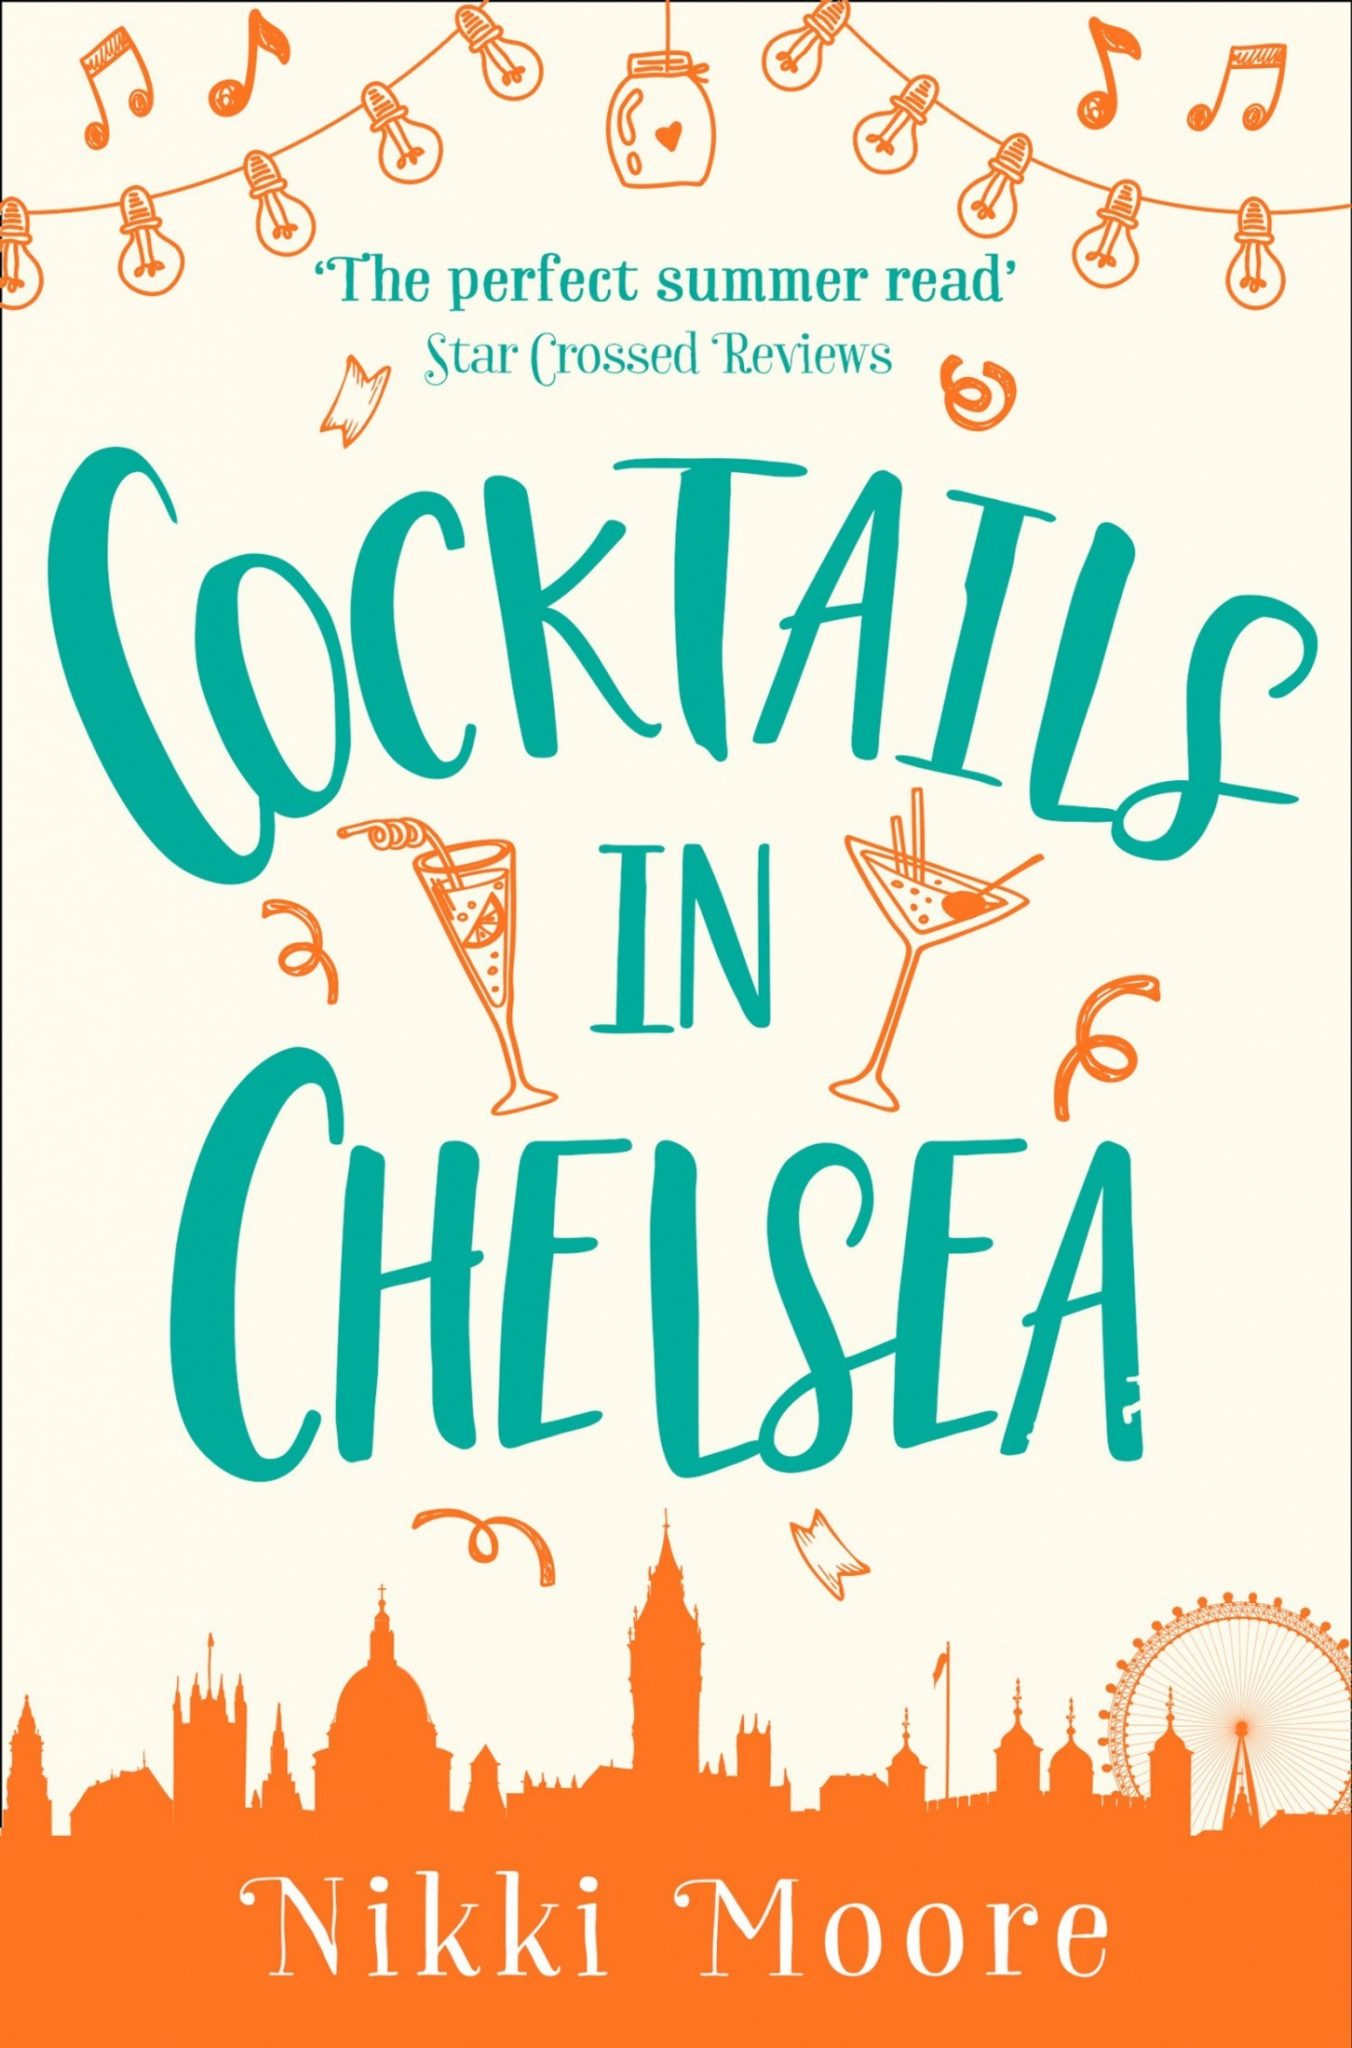 Cocktails in Chelsea